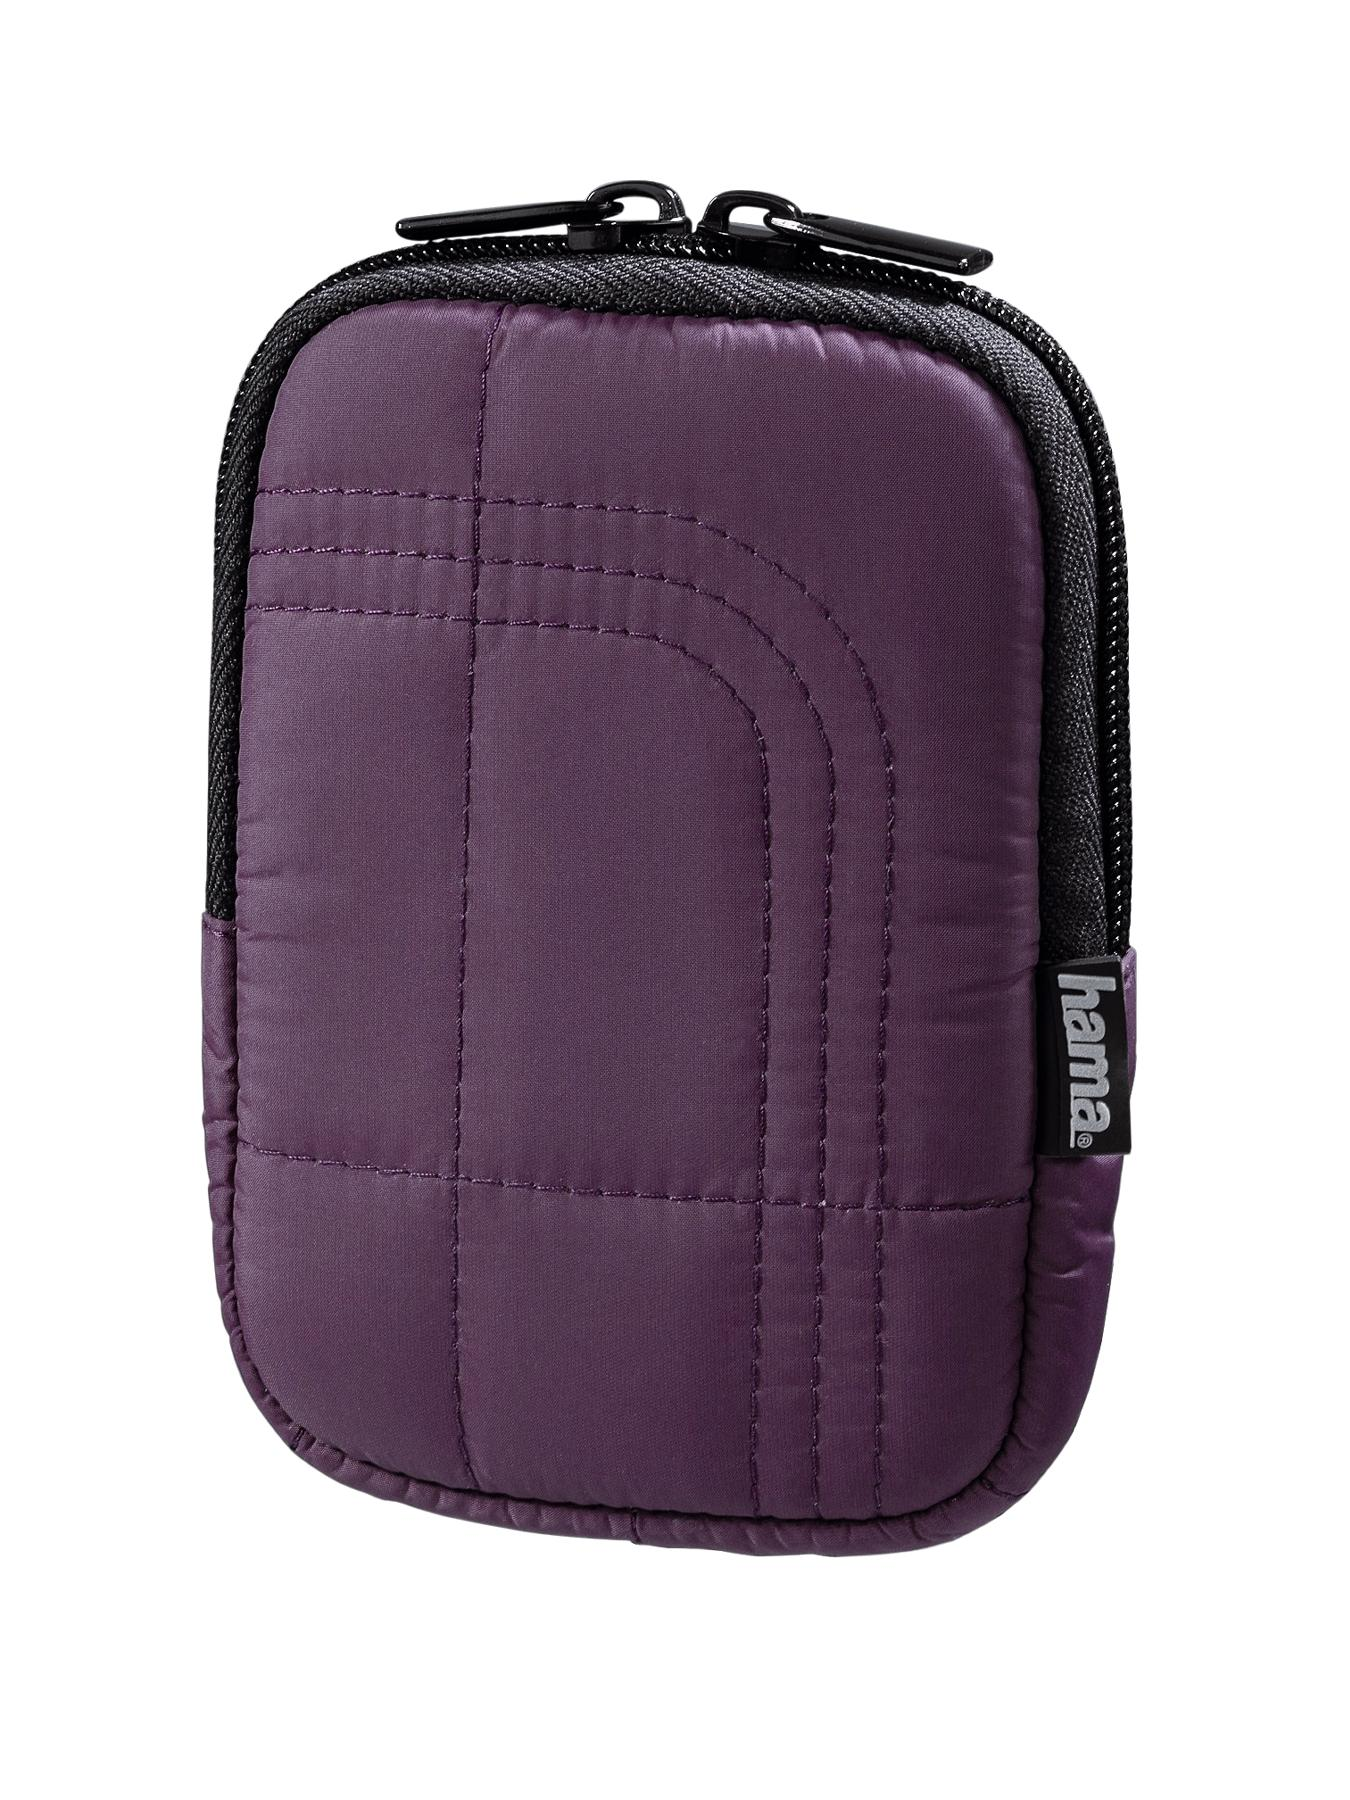 HAMA Fancy Memory 60C Camera Bag - Purple